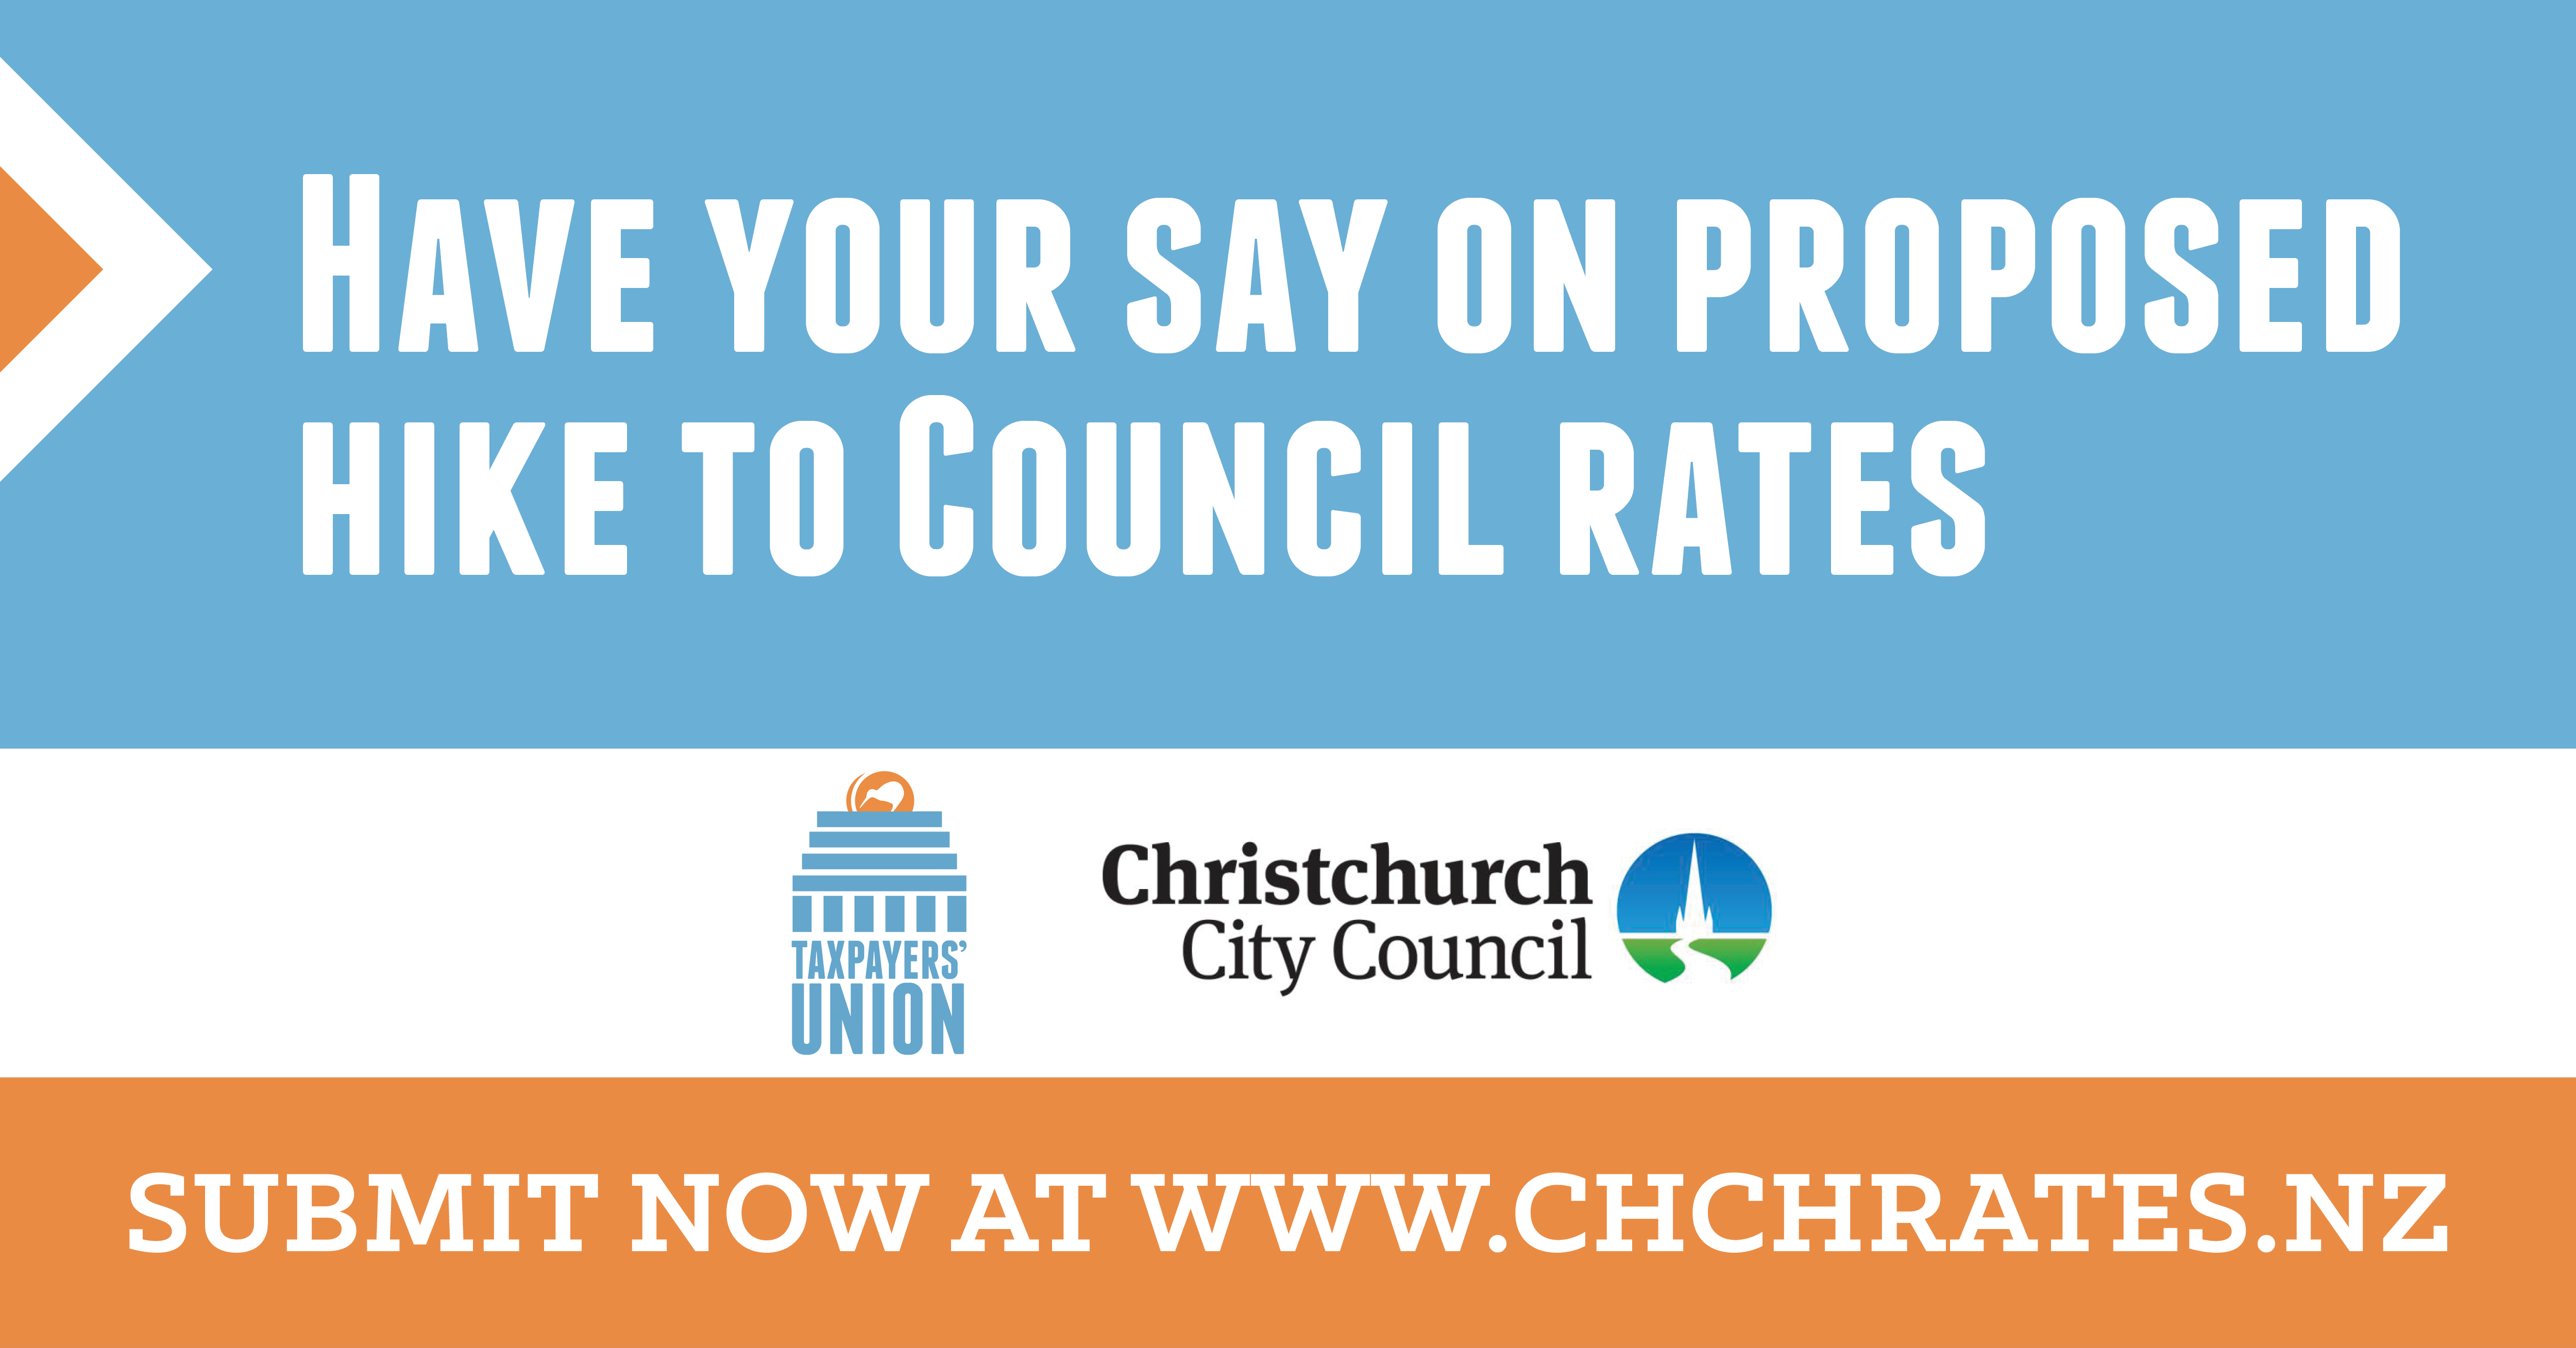 Chch rates preview